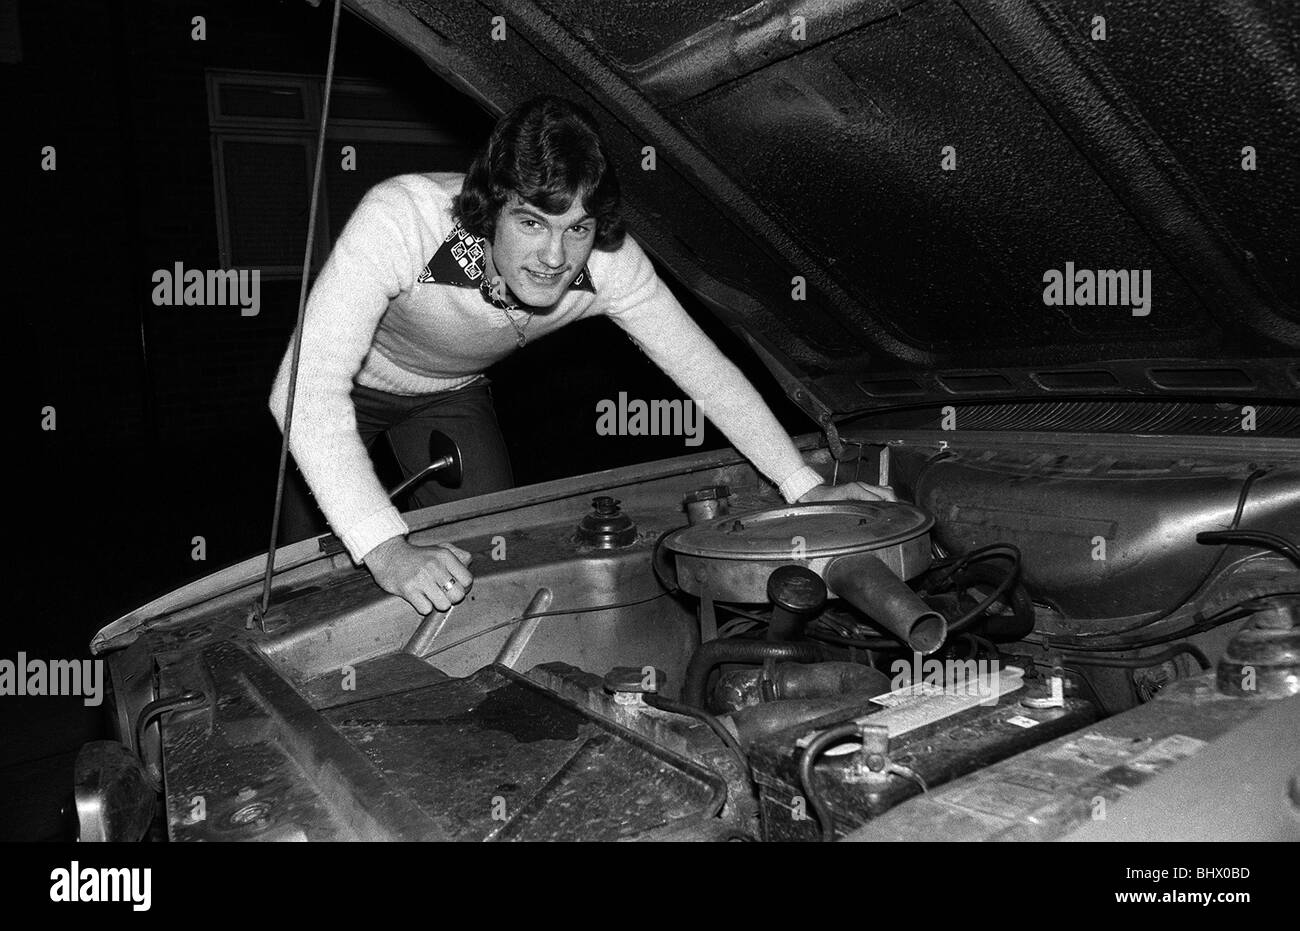 Footballer Glenn Hoddle at home with his car 1976 - Stock Image